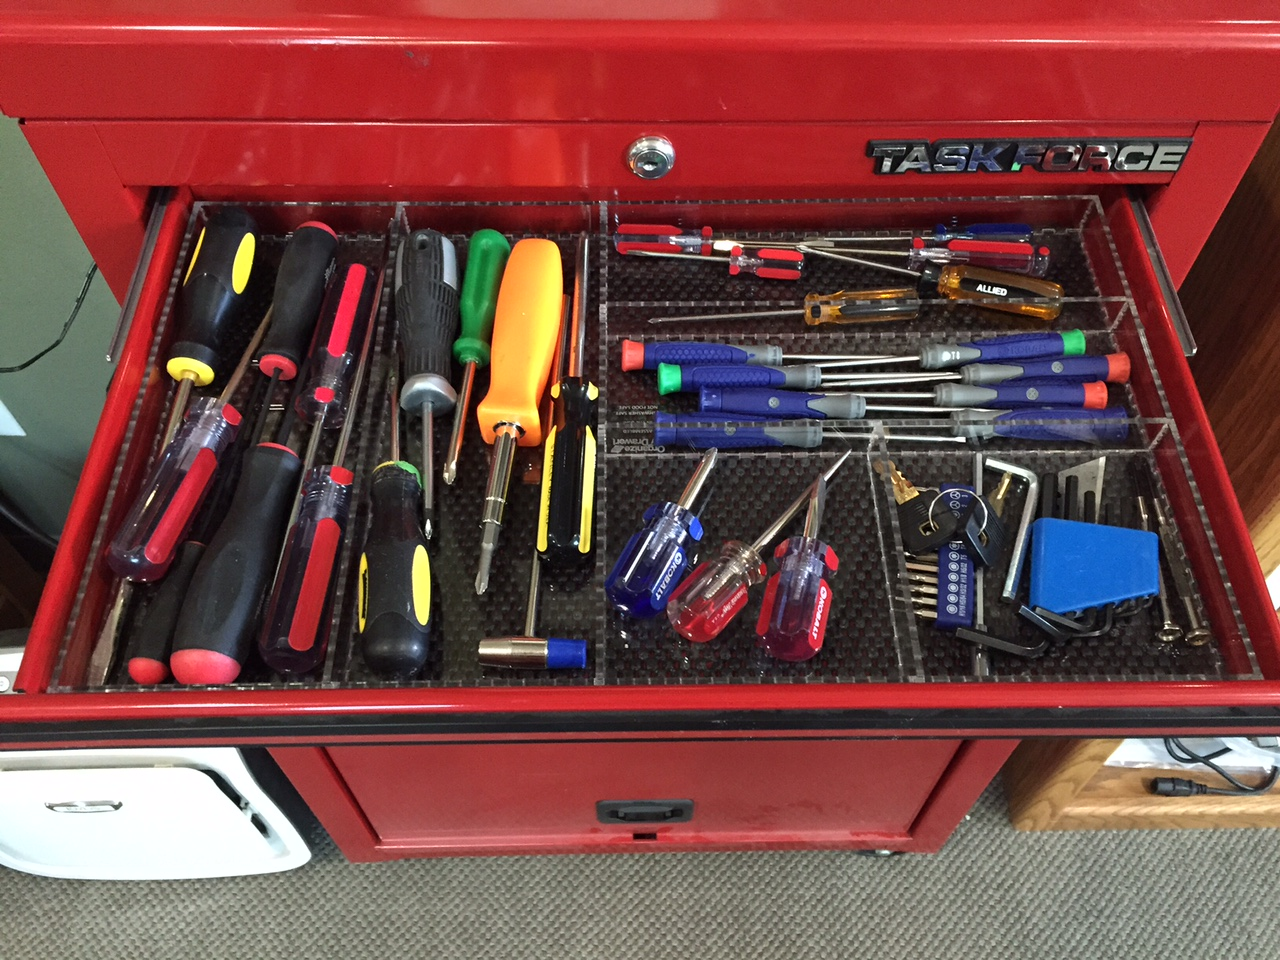 box itm small toolbox drawer drawers compartment chest tools s tray craftsman loading storage organizers tool image organizer is